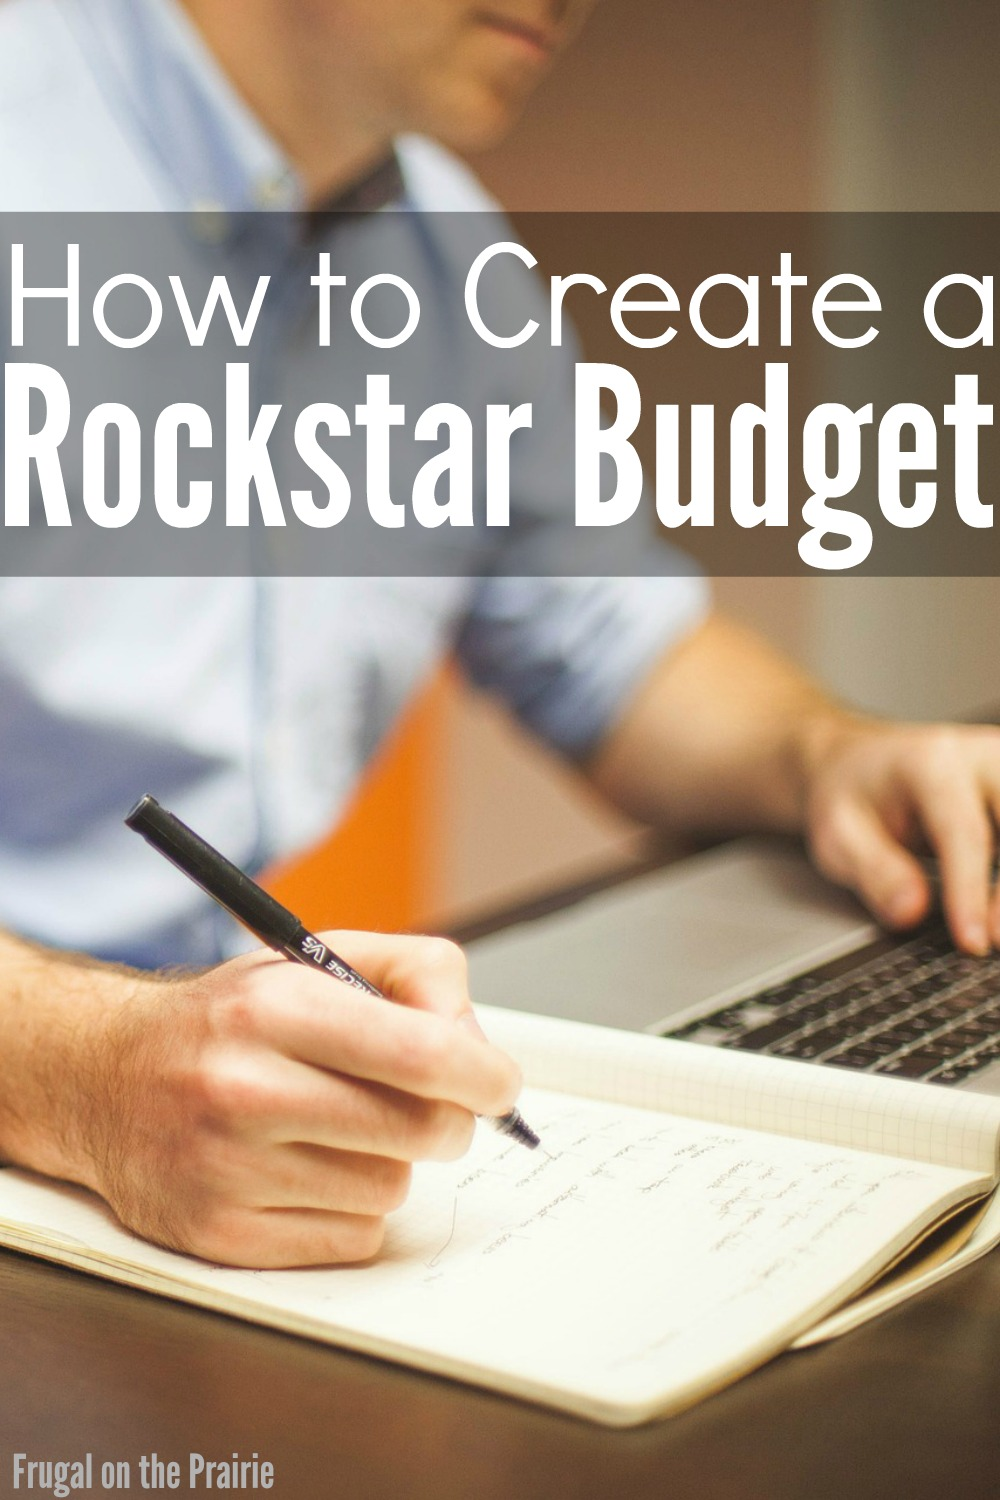 Every budget should be a rockstar and it doesn't take a tour bus or a guitar to create one. Get your finances in order with these 9 easy steps.